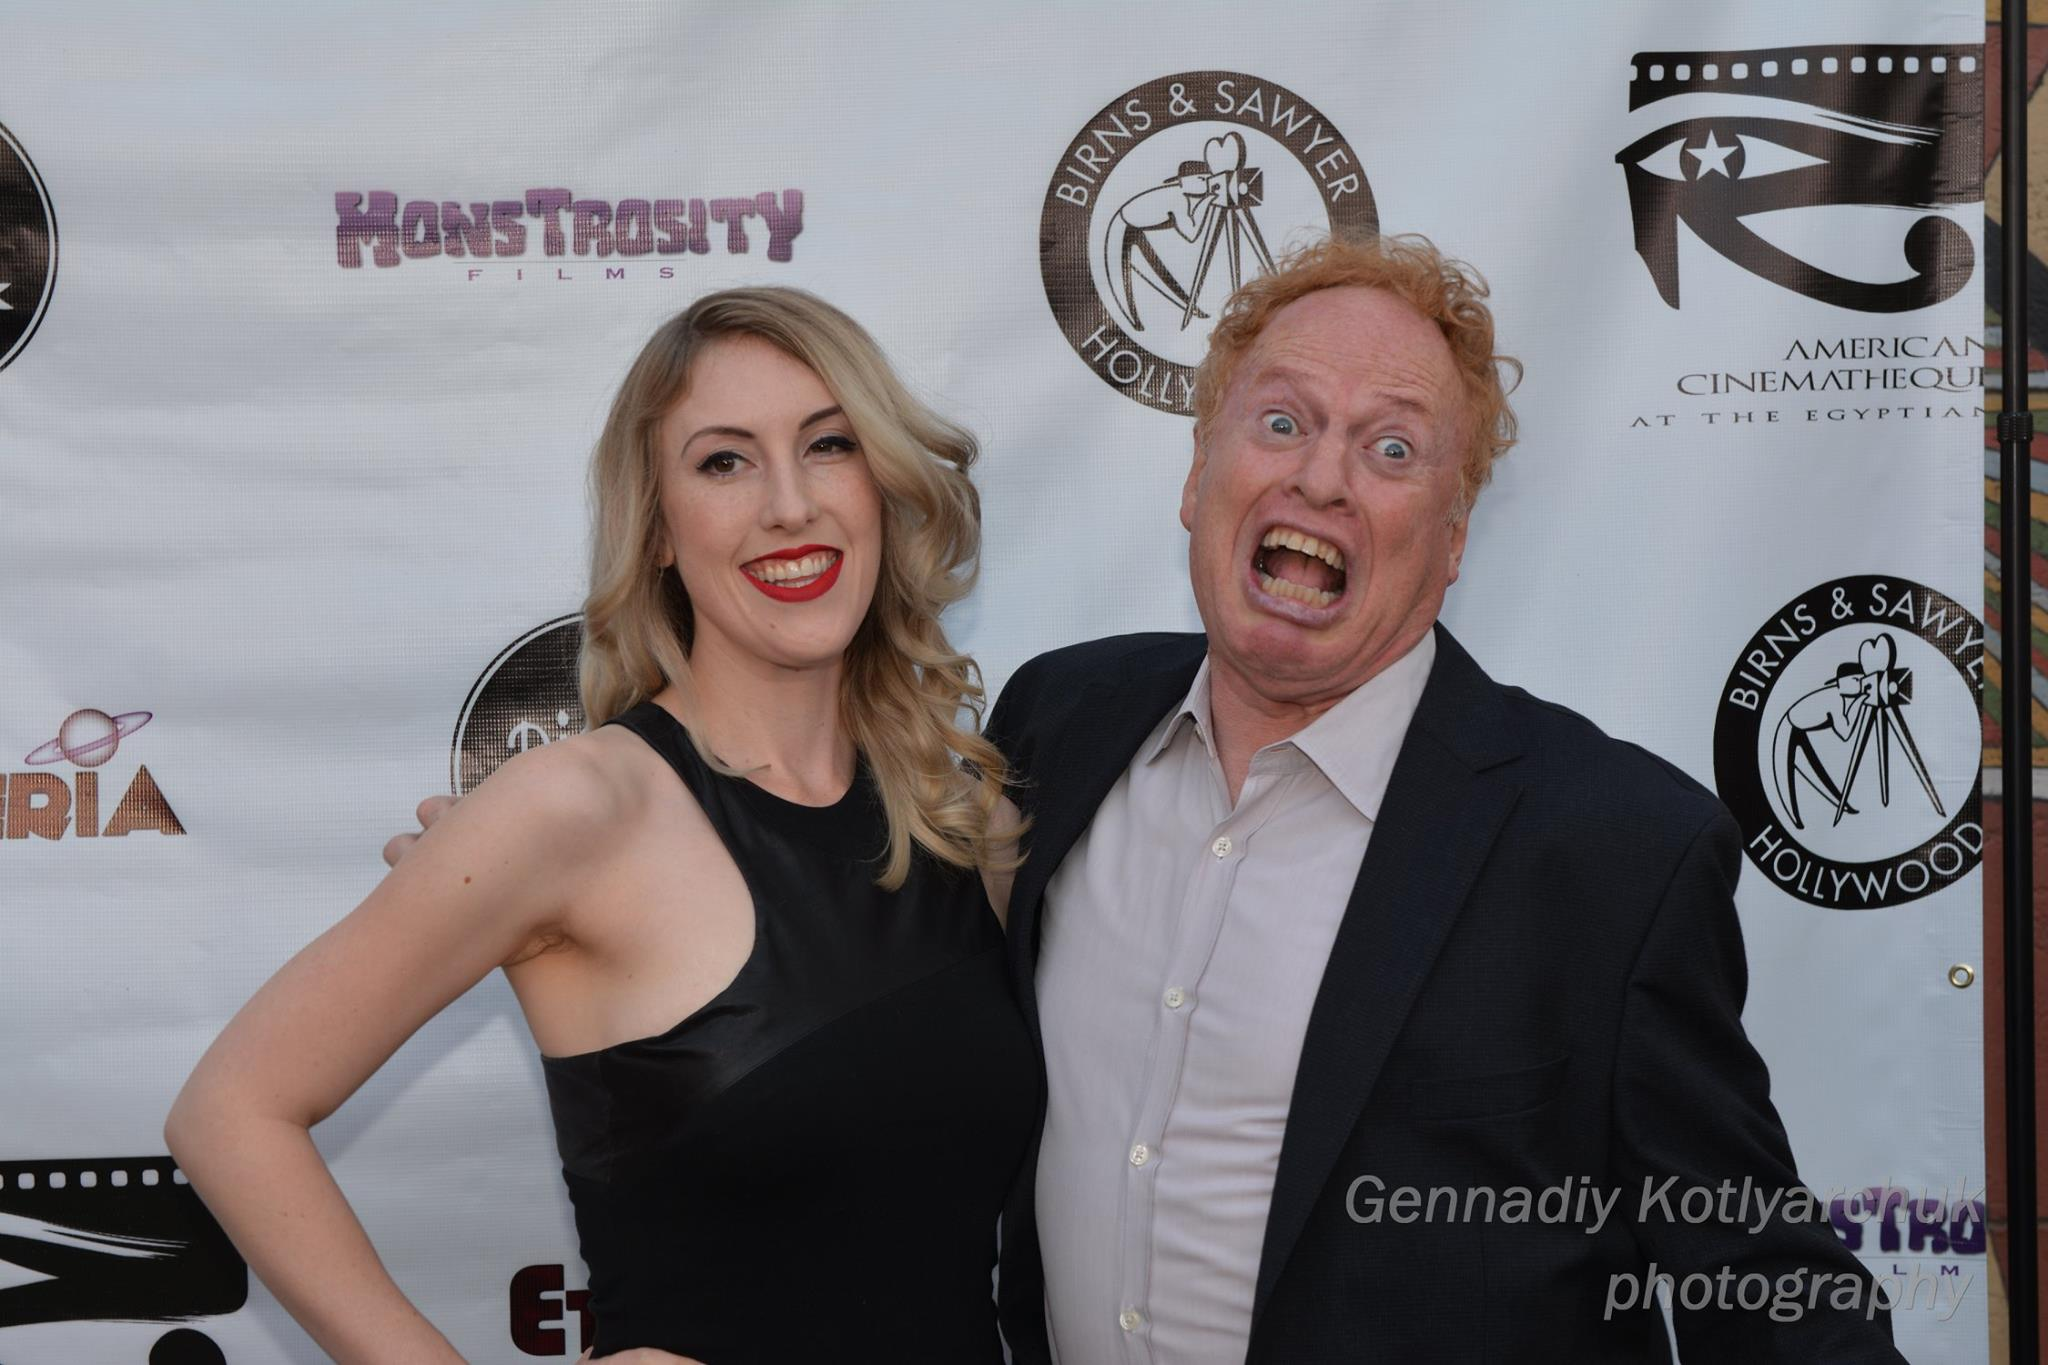 Richard and Anastasia Elfman at Etheria Film Night 2015